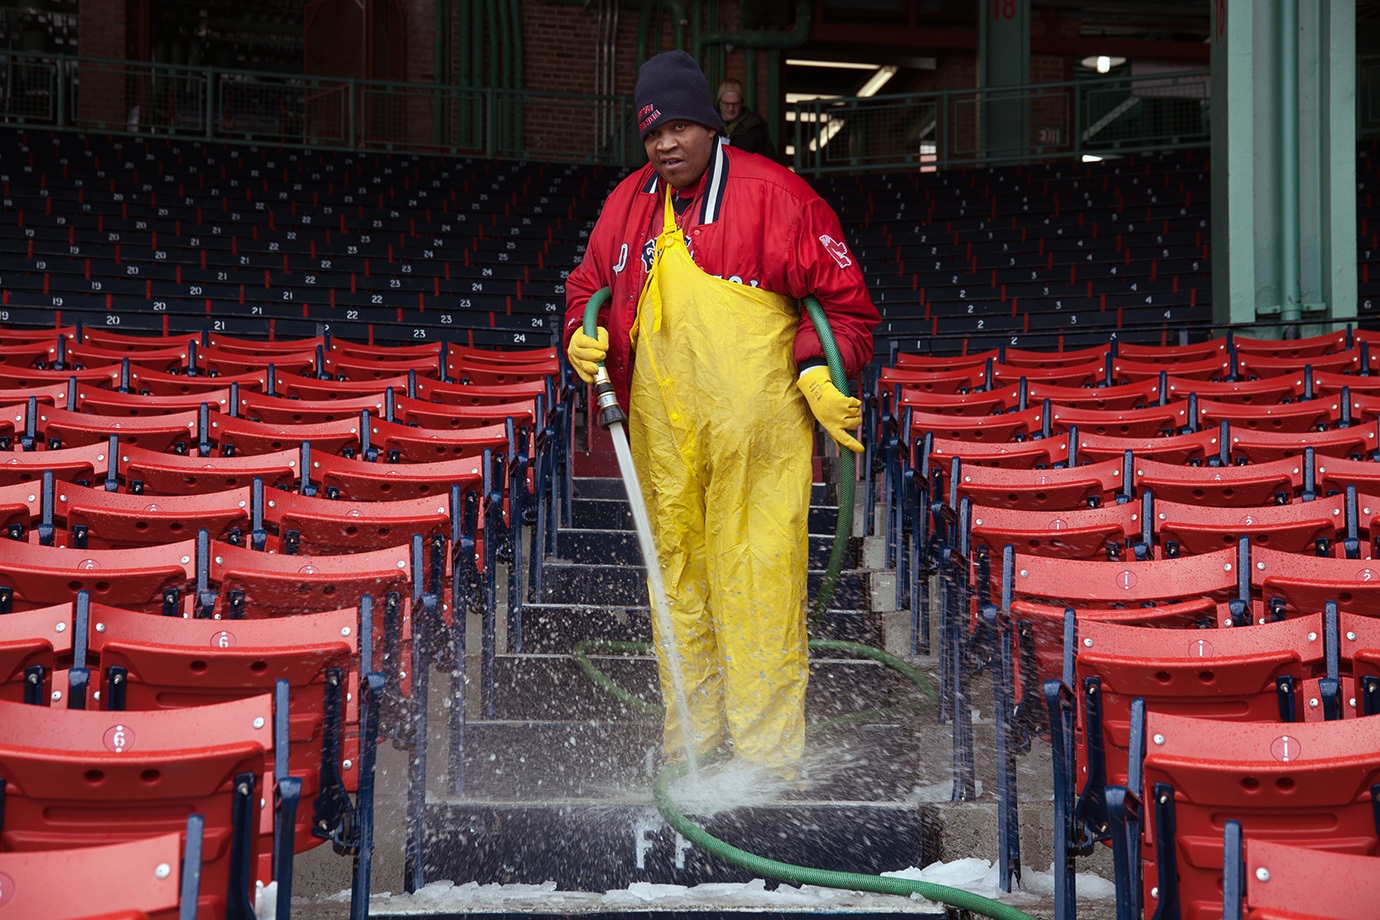 A member of the Fenway Park grounds crew prepares the lower bowl seating for the big crowds expected for the two-night event.